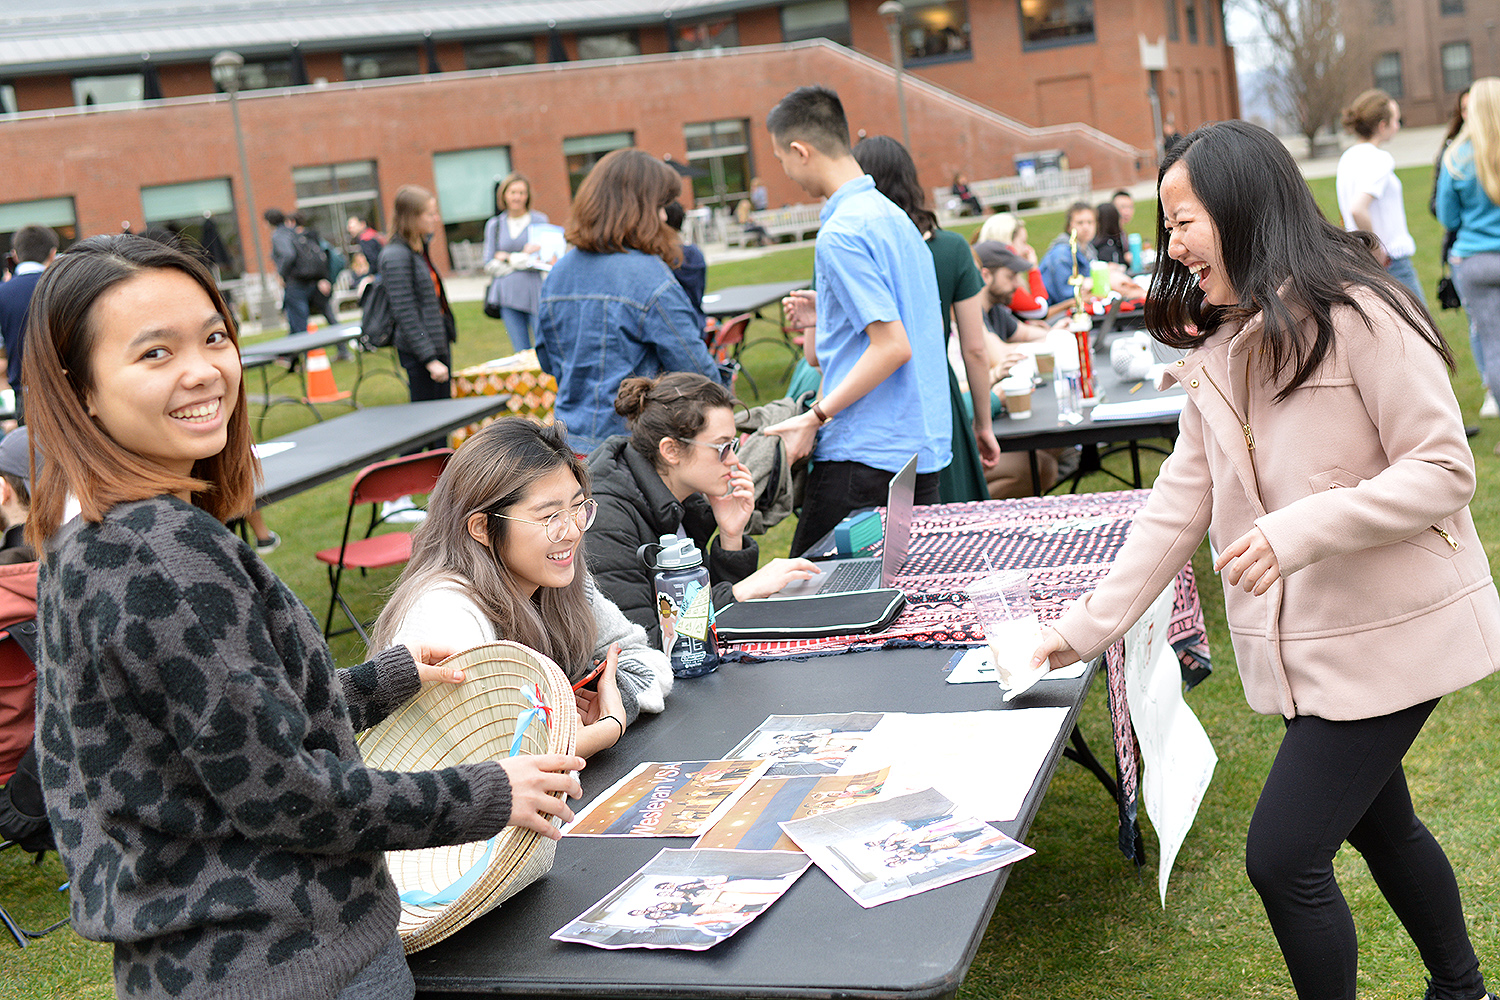 On April 13, Wesleyan students hosted a Student Activities Fair to introduce Class of 2022 admits to the many clubs and activities available on campus.